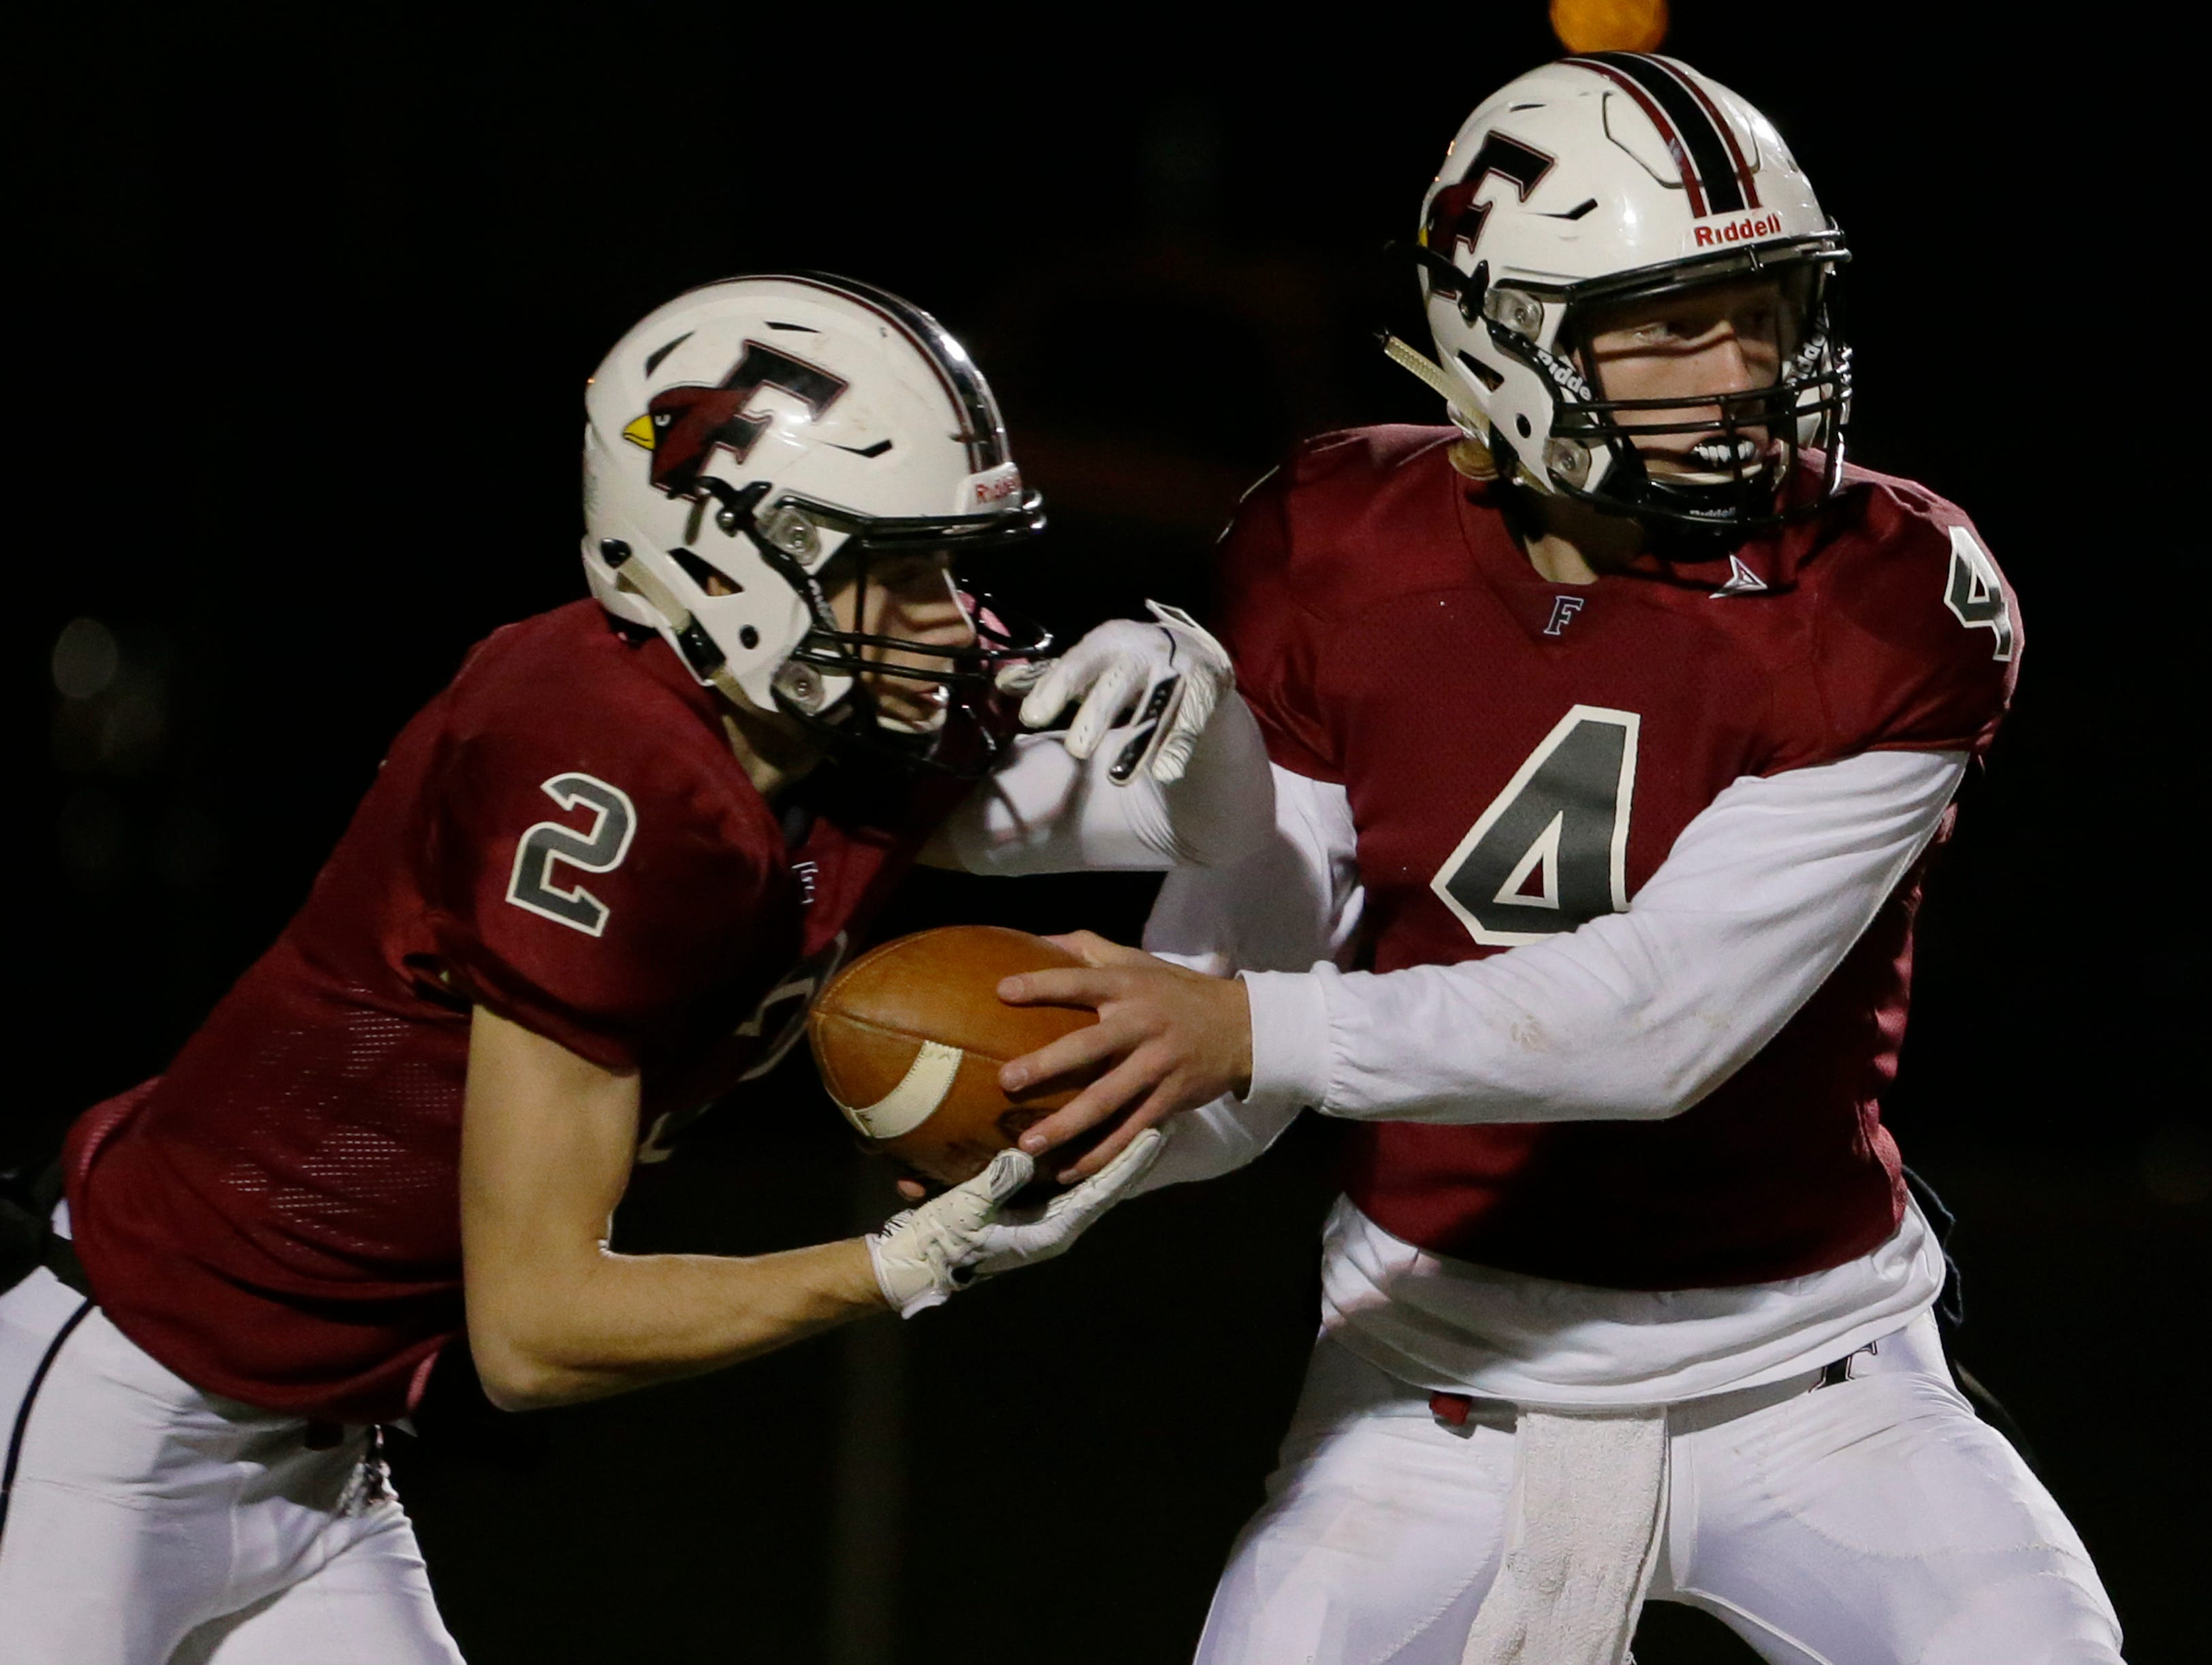 Fond du Lac's Carson Raddatz hands off to Eben Sauer during their game.  Fond du Lac Cardinals played Arrowhead Warhawks in WIAA football playoff sectionals, Friday, Oct. 26, 2018, at Fruth Field in Fond du Lac.  Fond du Lac won 28 - 22.Joe Sienkiewicz/USA Today NETWORK-Wisconsin